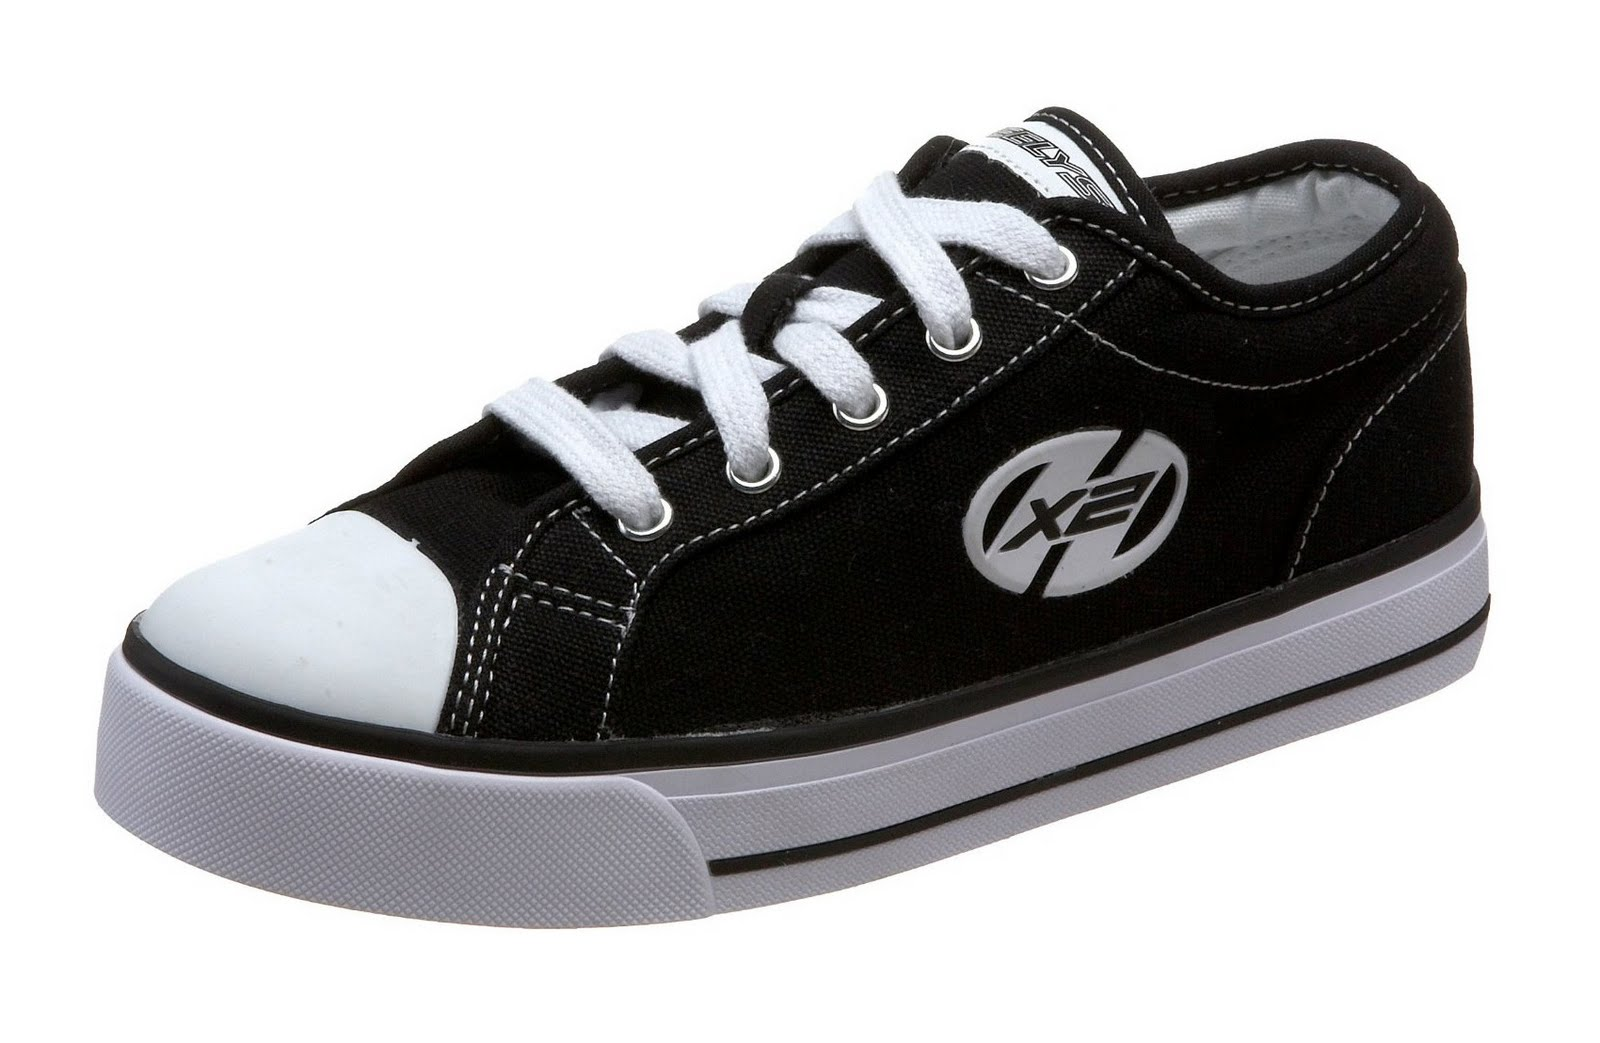 Heely skate shoes reviews - Heelys Jazzy Review